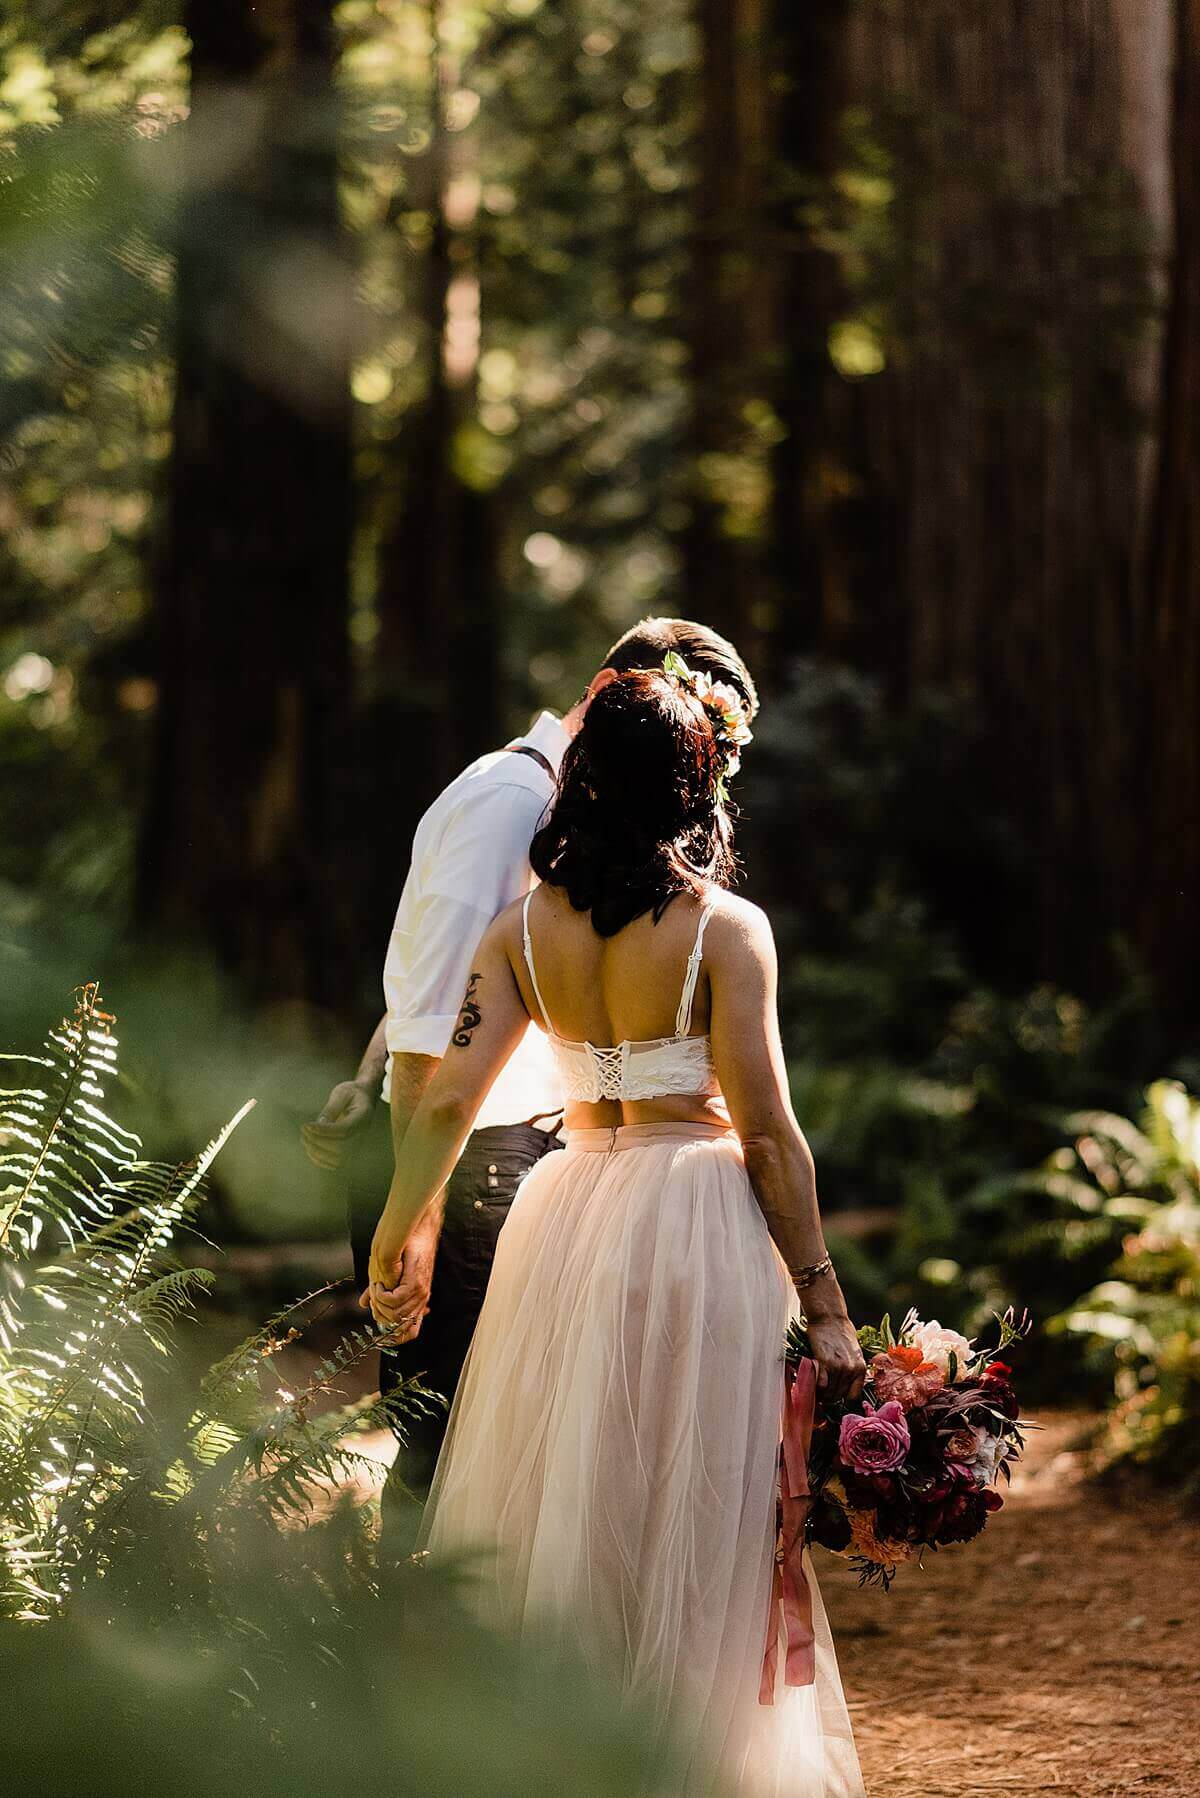 Allison-Brooks-Jedediah-Smiith-Redwoods-Adventure-Elopement-Wedding-S-Photography-Blog_0050.jpg